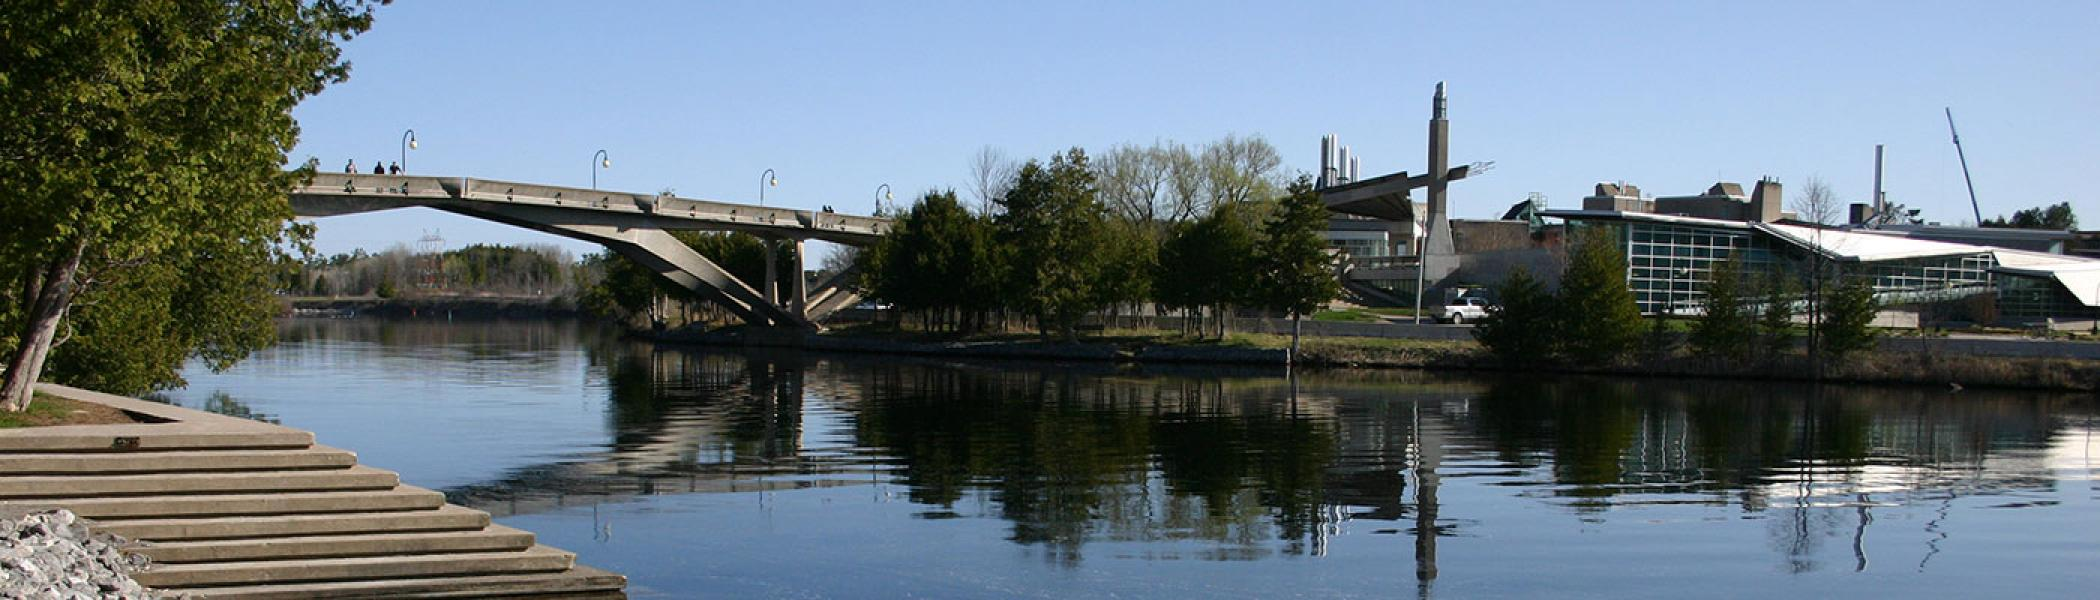 Faryon Bridge over the Otonabee River, Symons Campus